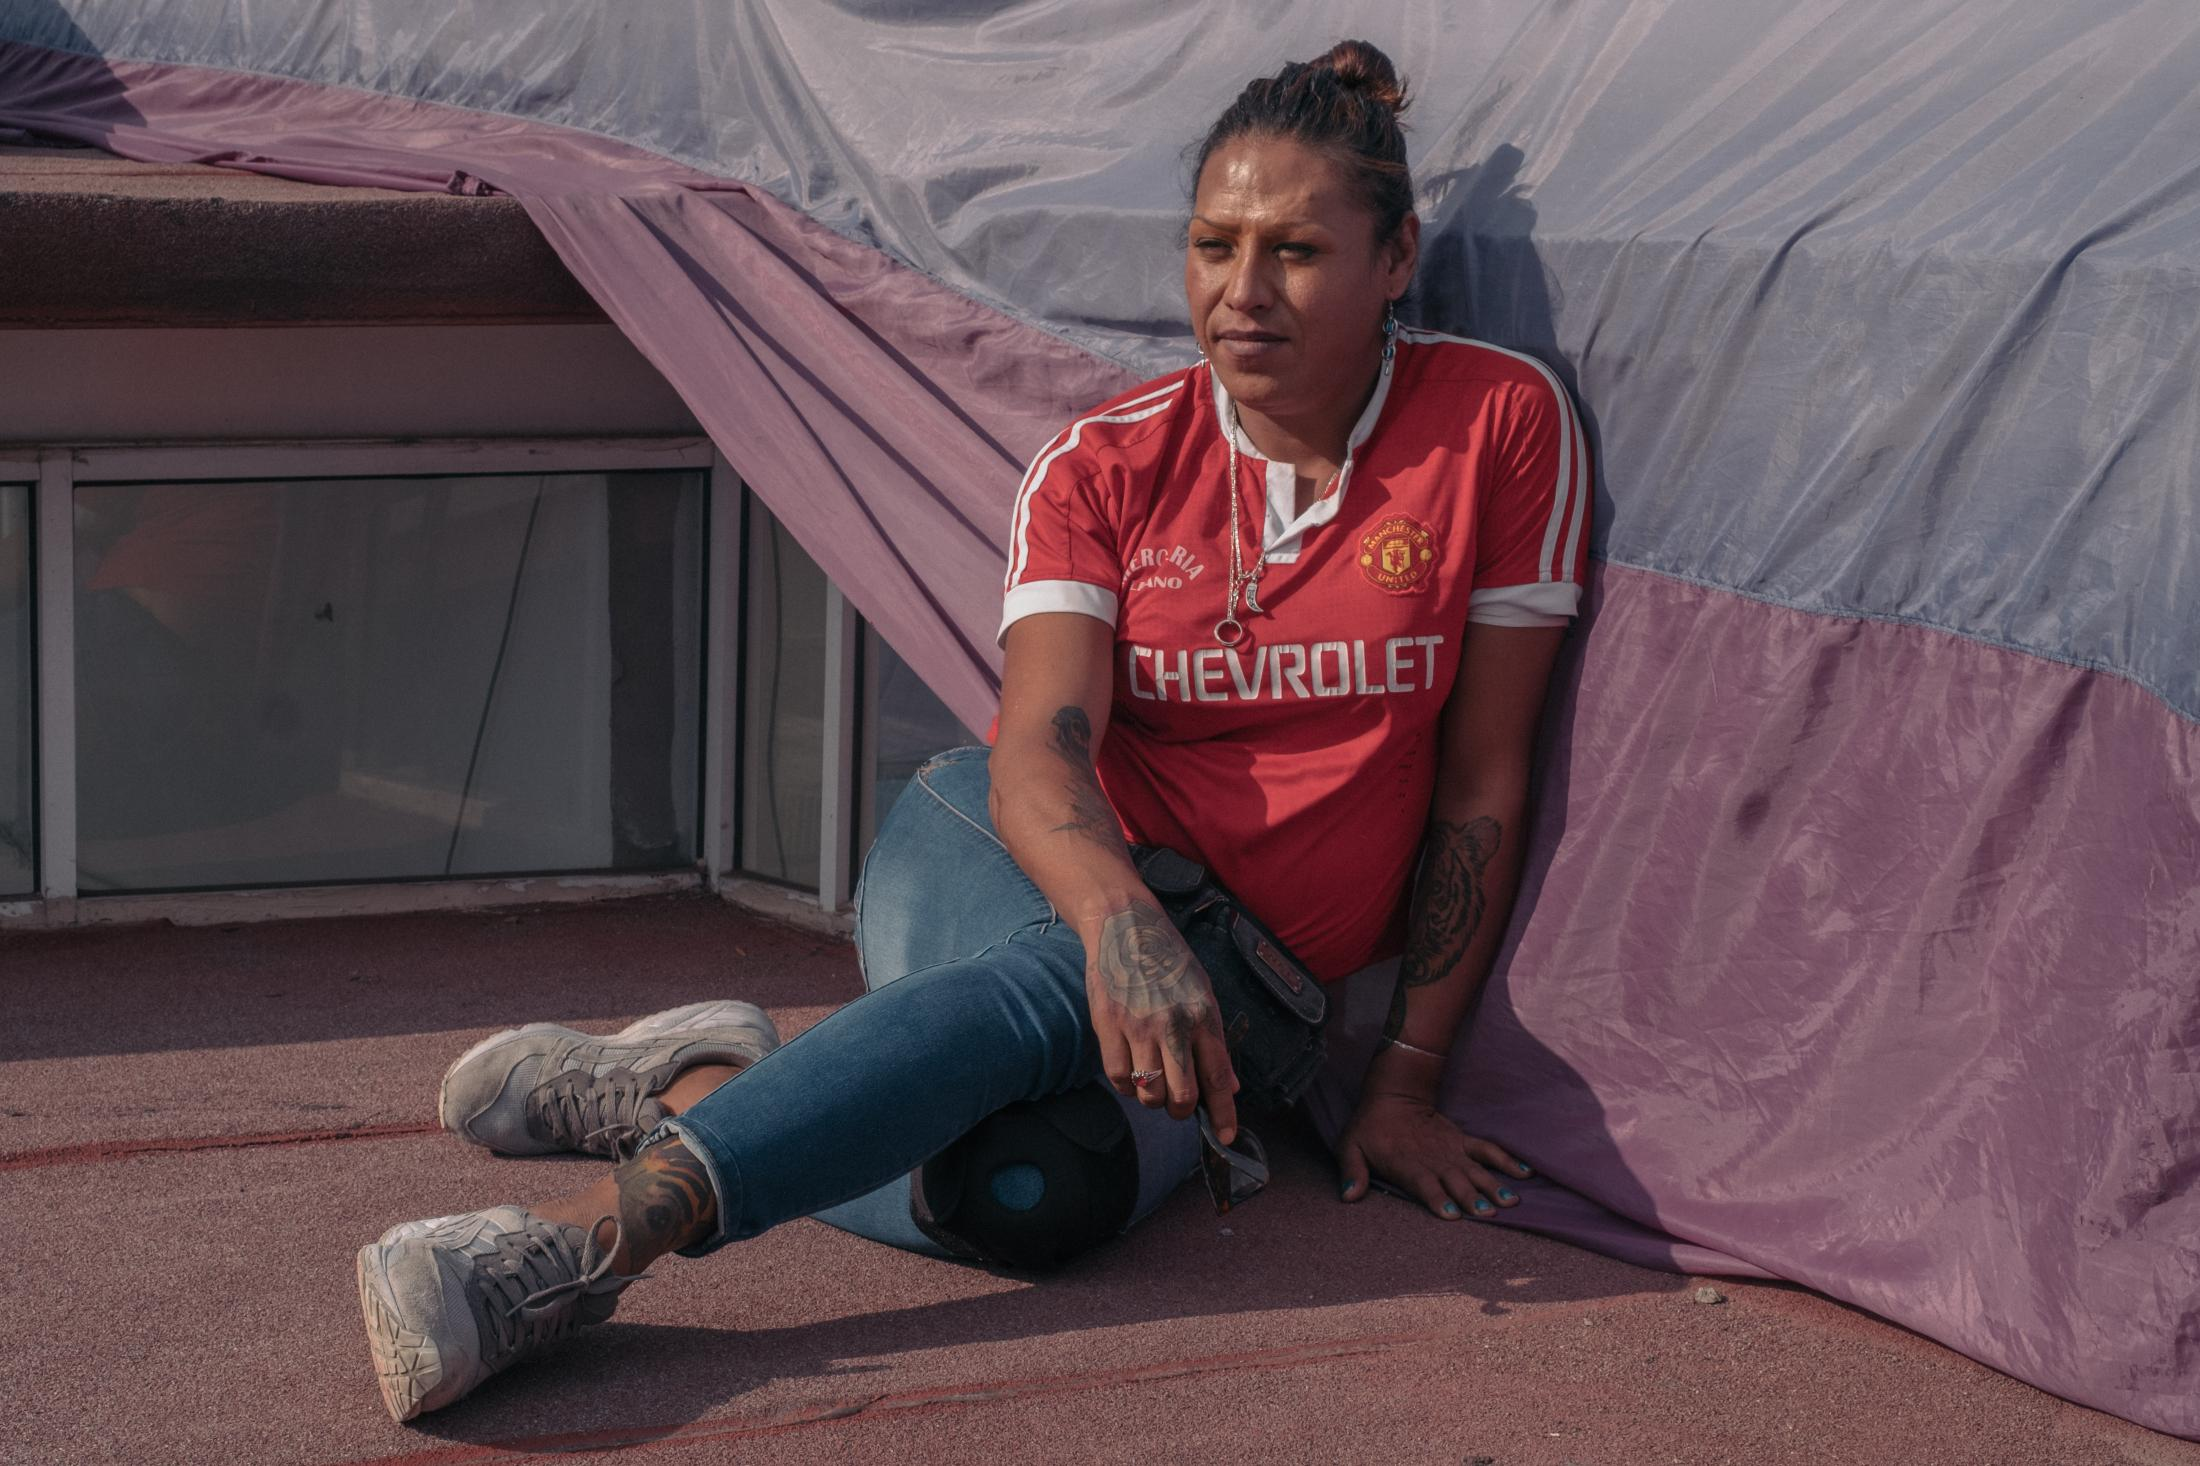 Kenya Cuevas, trans activist and founder of La Casa de las Munecas Tiresias, a shelter for trans people in Mexico City. Shot on assignment for KOMITID . Mexico City, June 2020.